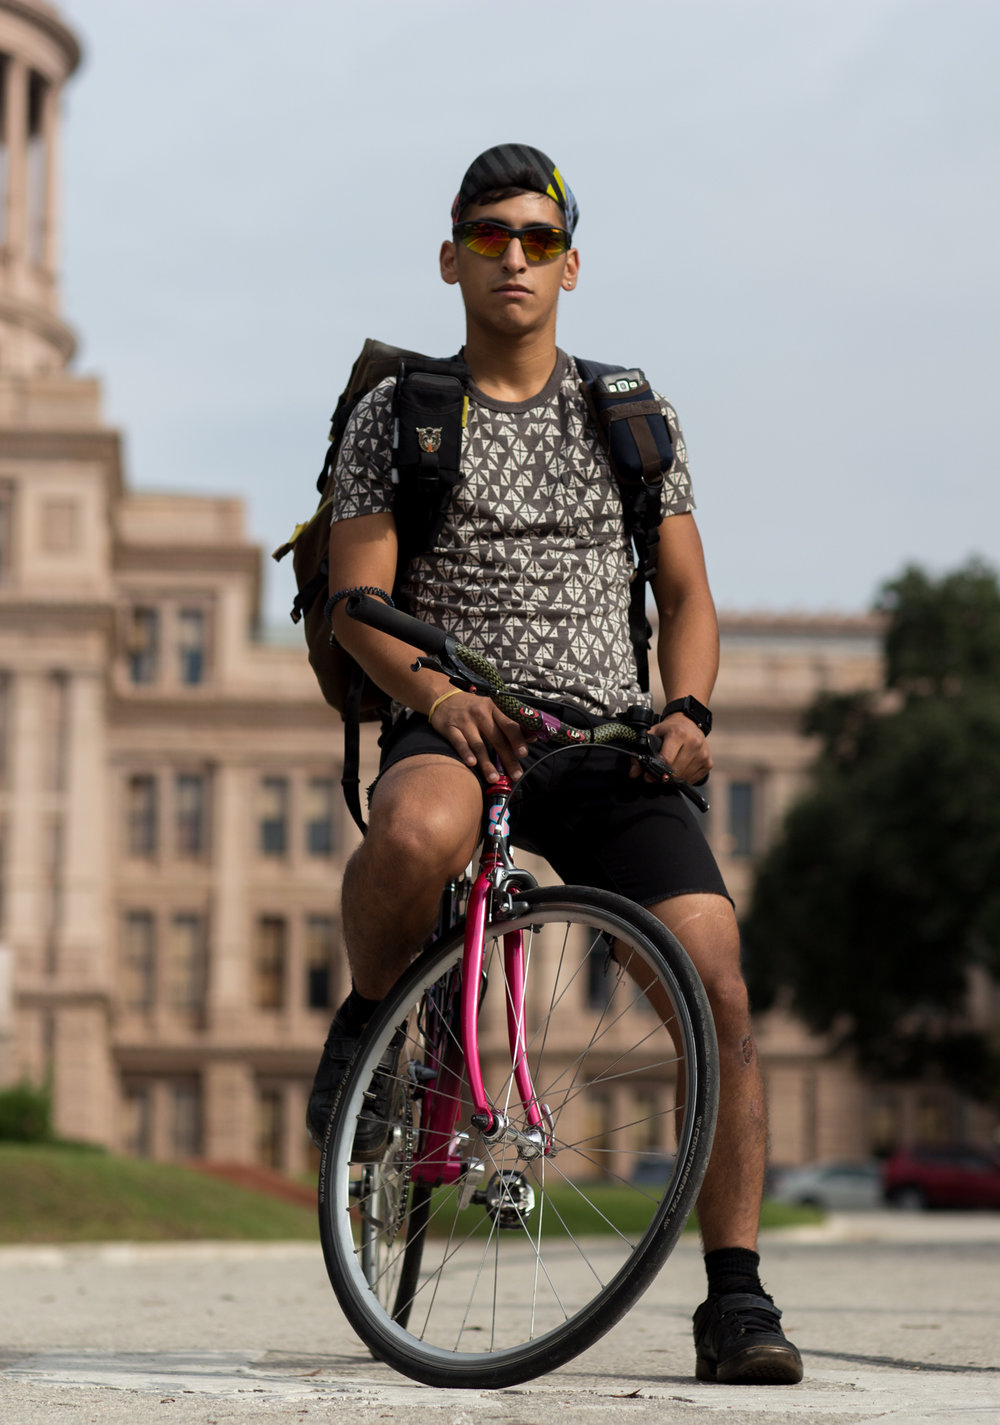 Johnpaul Valenciano has been doing bike courier work around Austin for over three years and currently delivers sensitive documents for local government officials and businesses. Downtown Austin, November 10, 2016.